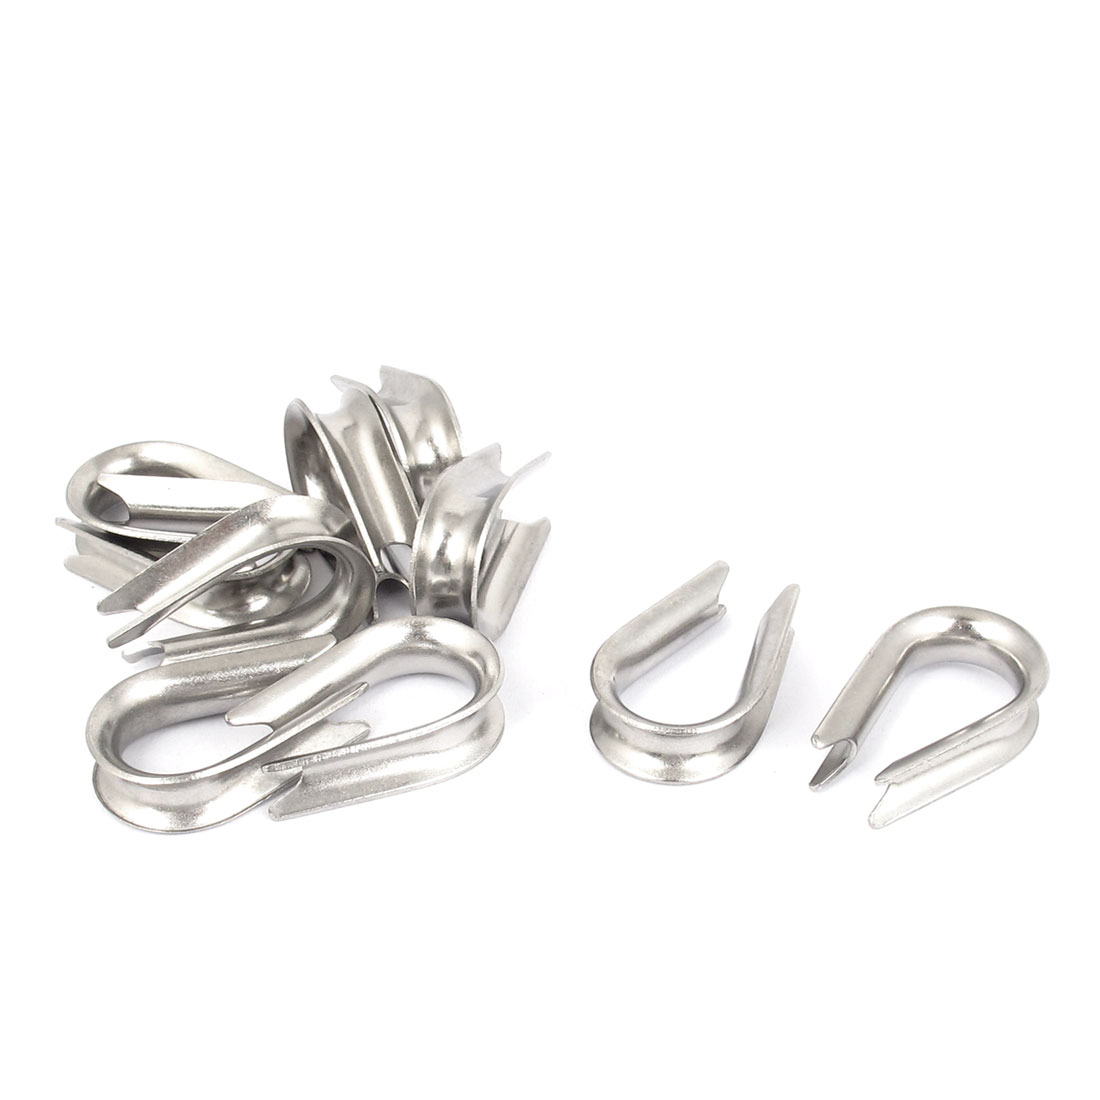 "304 Stainless Steel 5mm 3/16"" Wire Rope Cable Thimbles Silver Tone 10pcs"